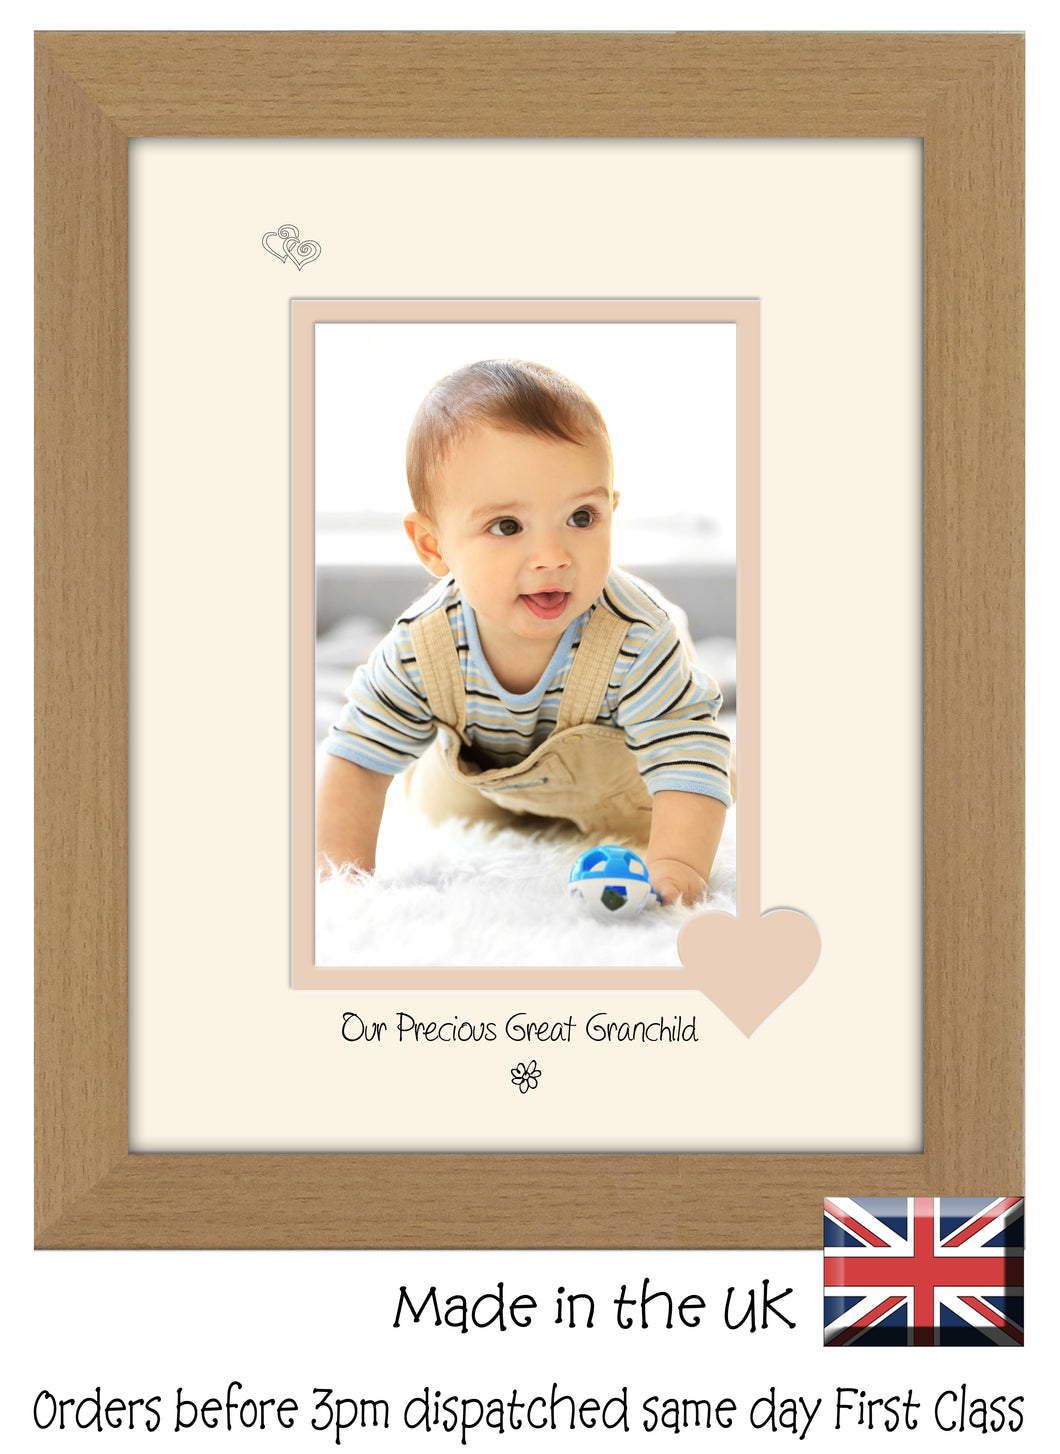 Great Grandchild Photo Frame - Our precious Great Grandchild Portrait photo frame 6